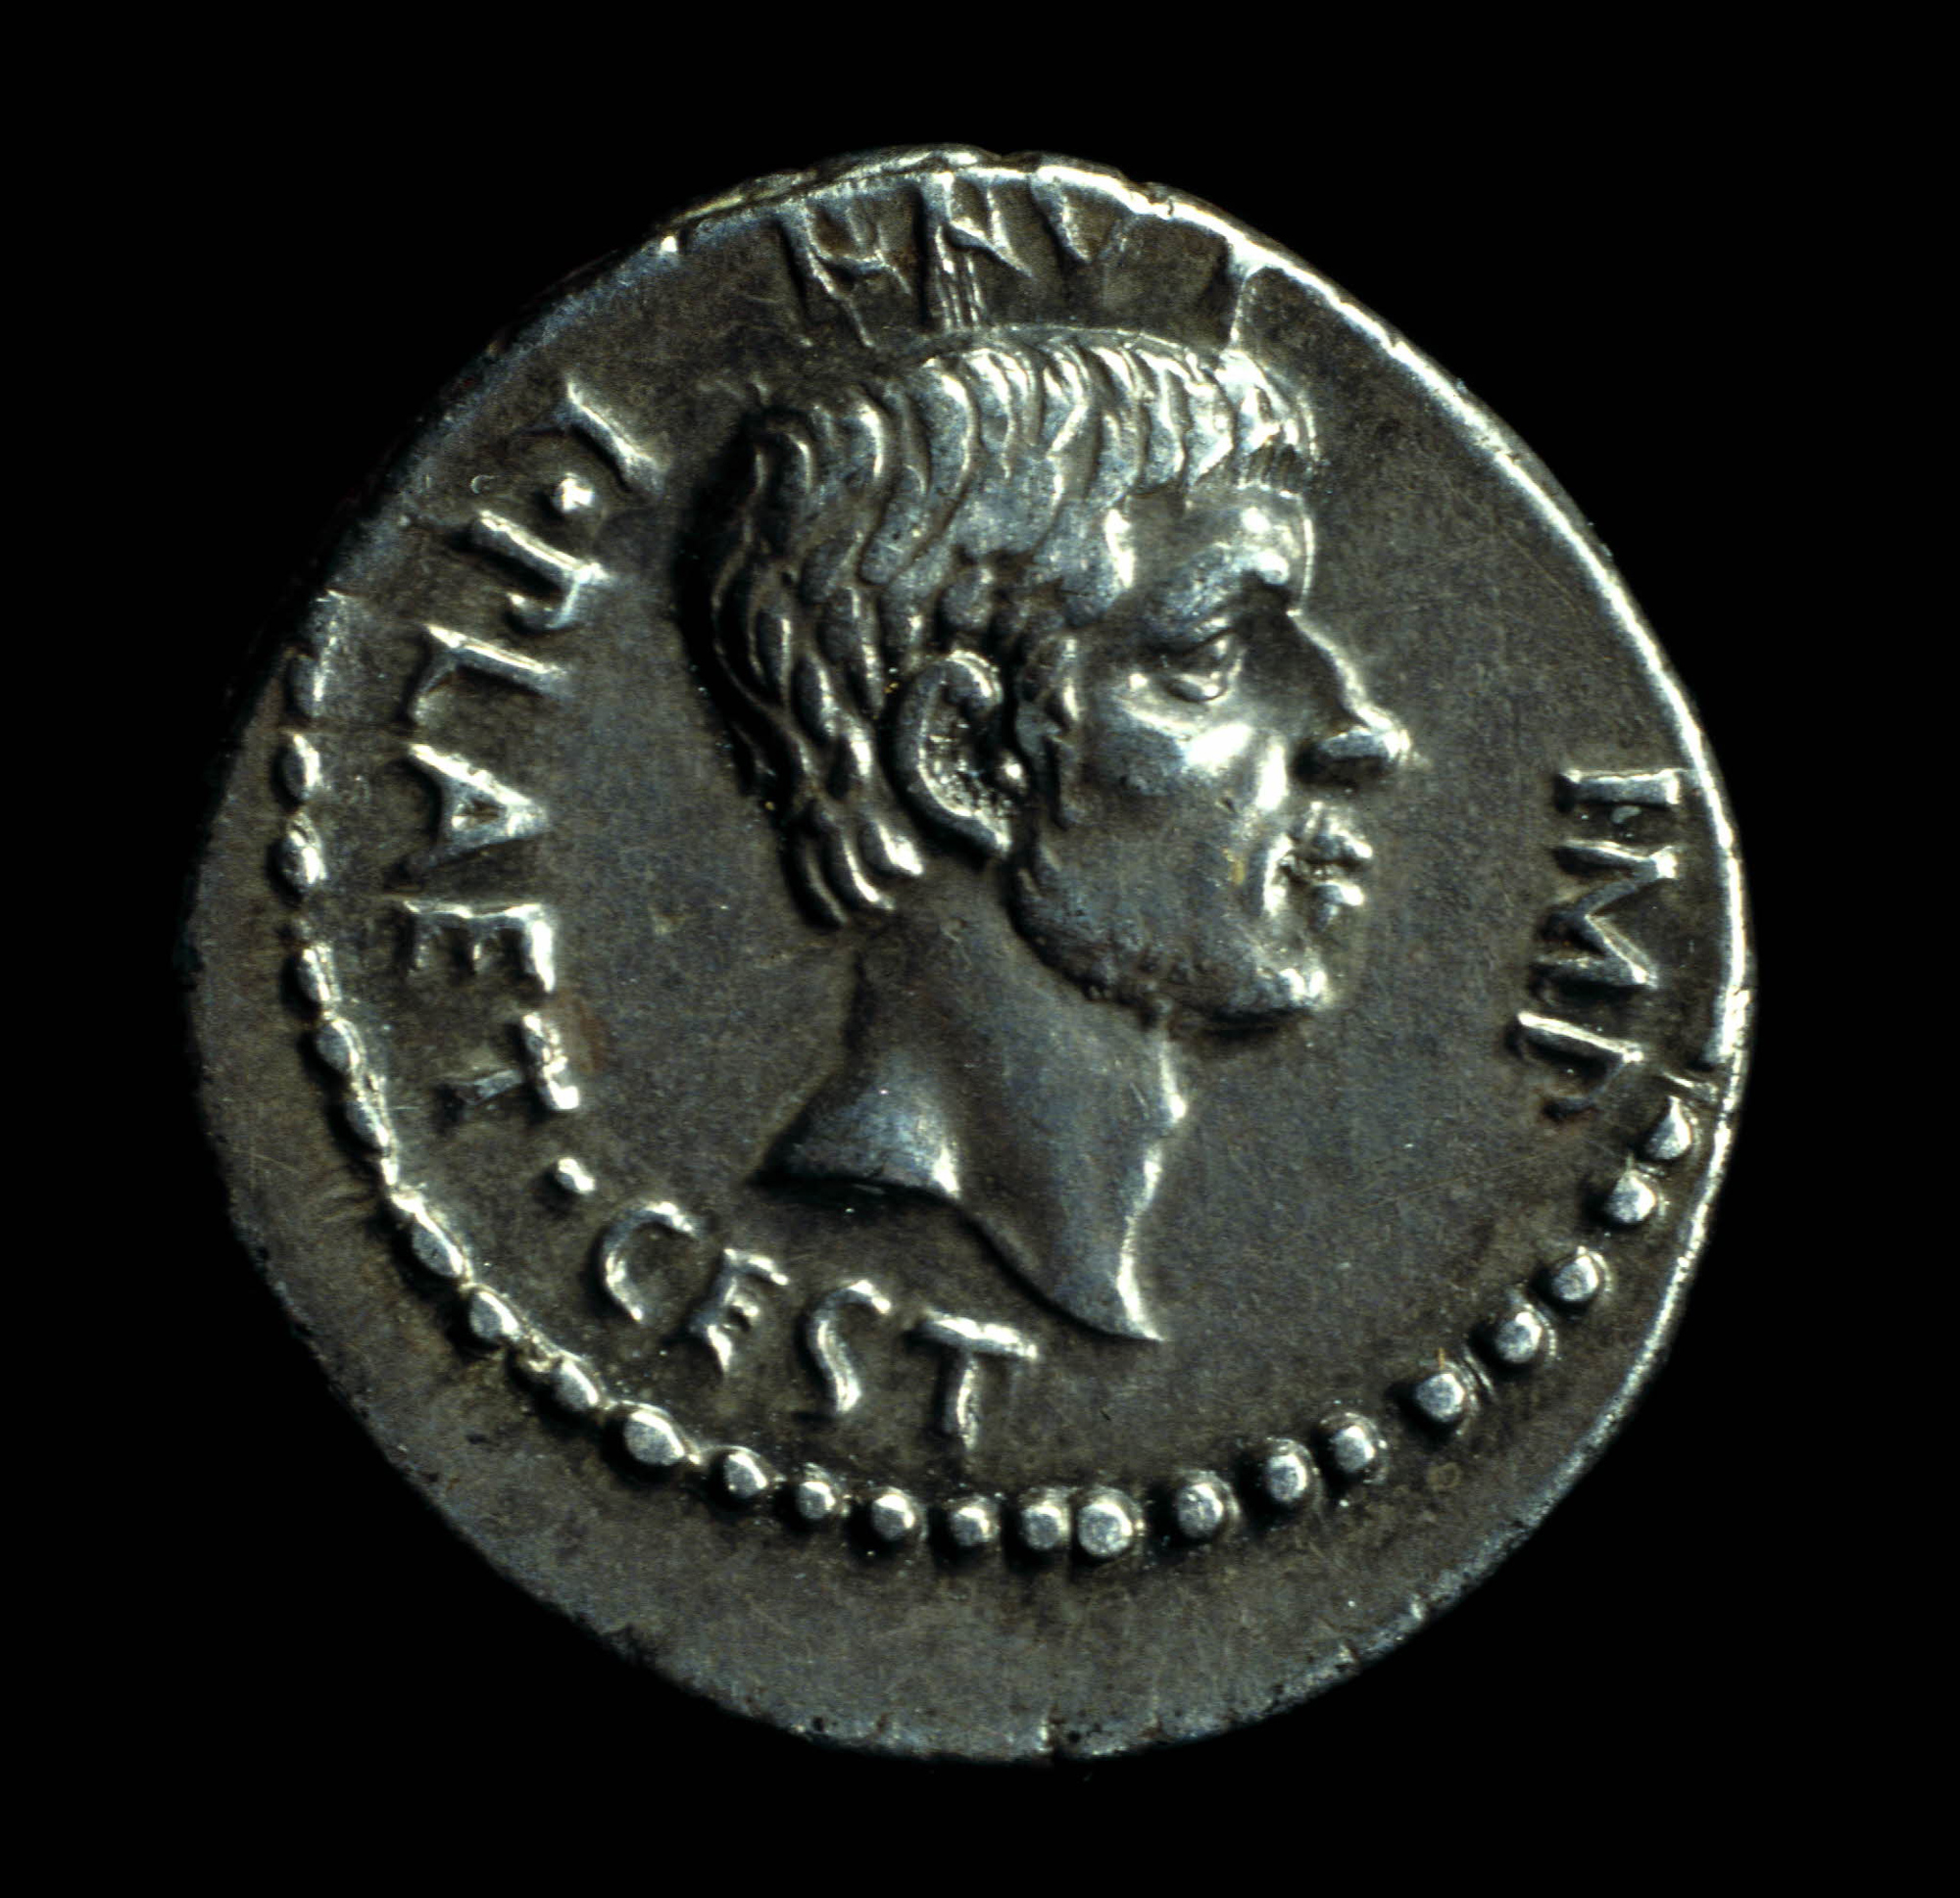 Silver coin commemorating the Ides of March